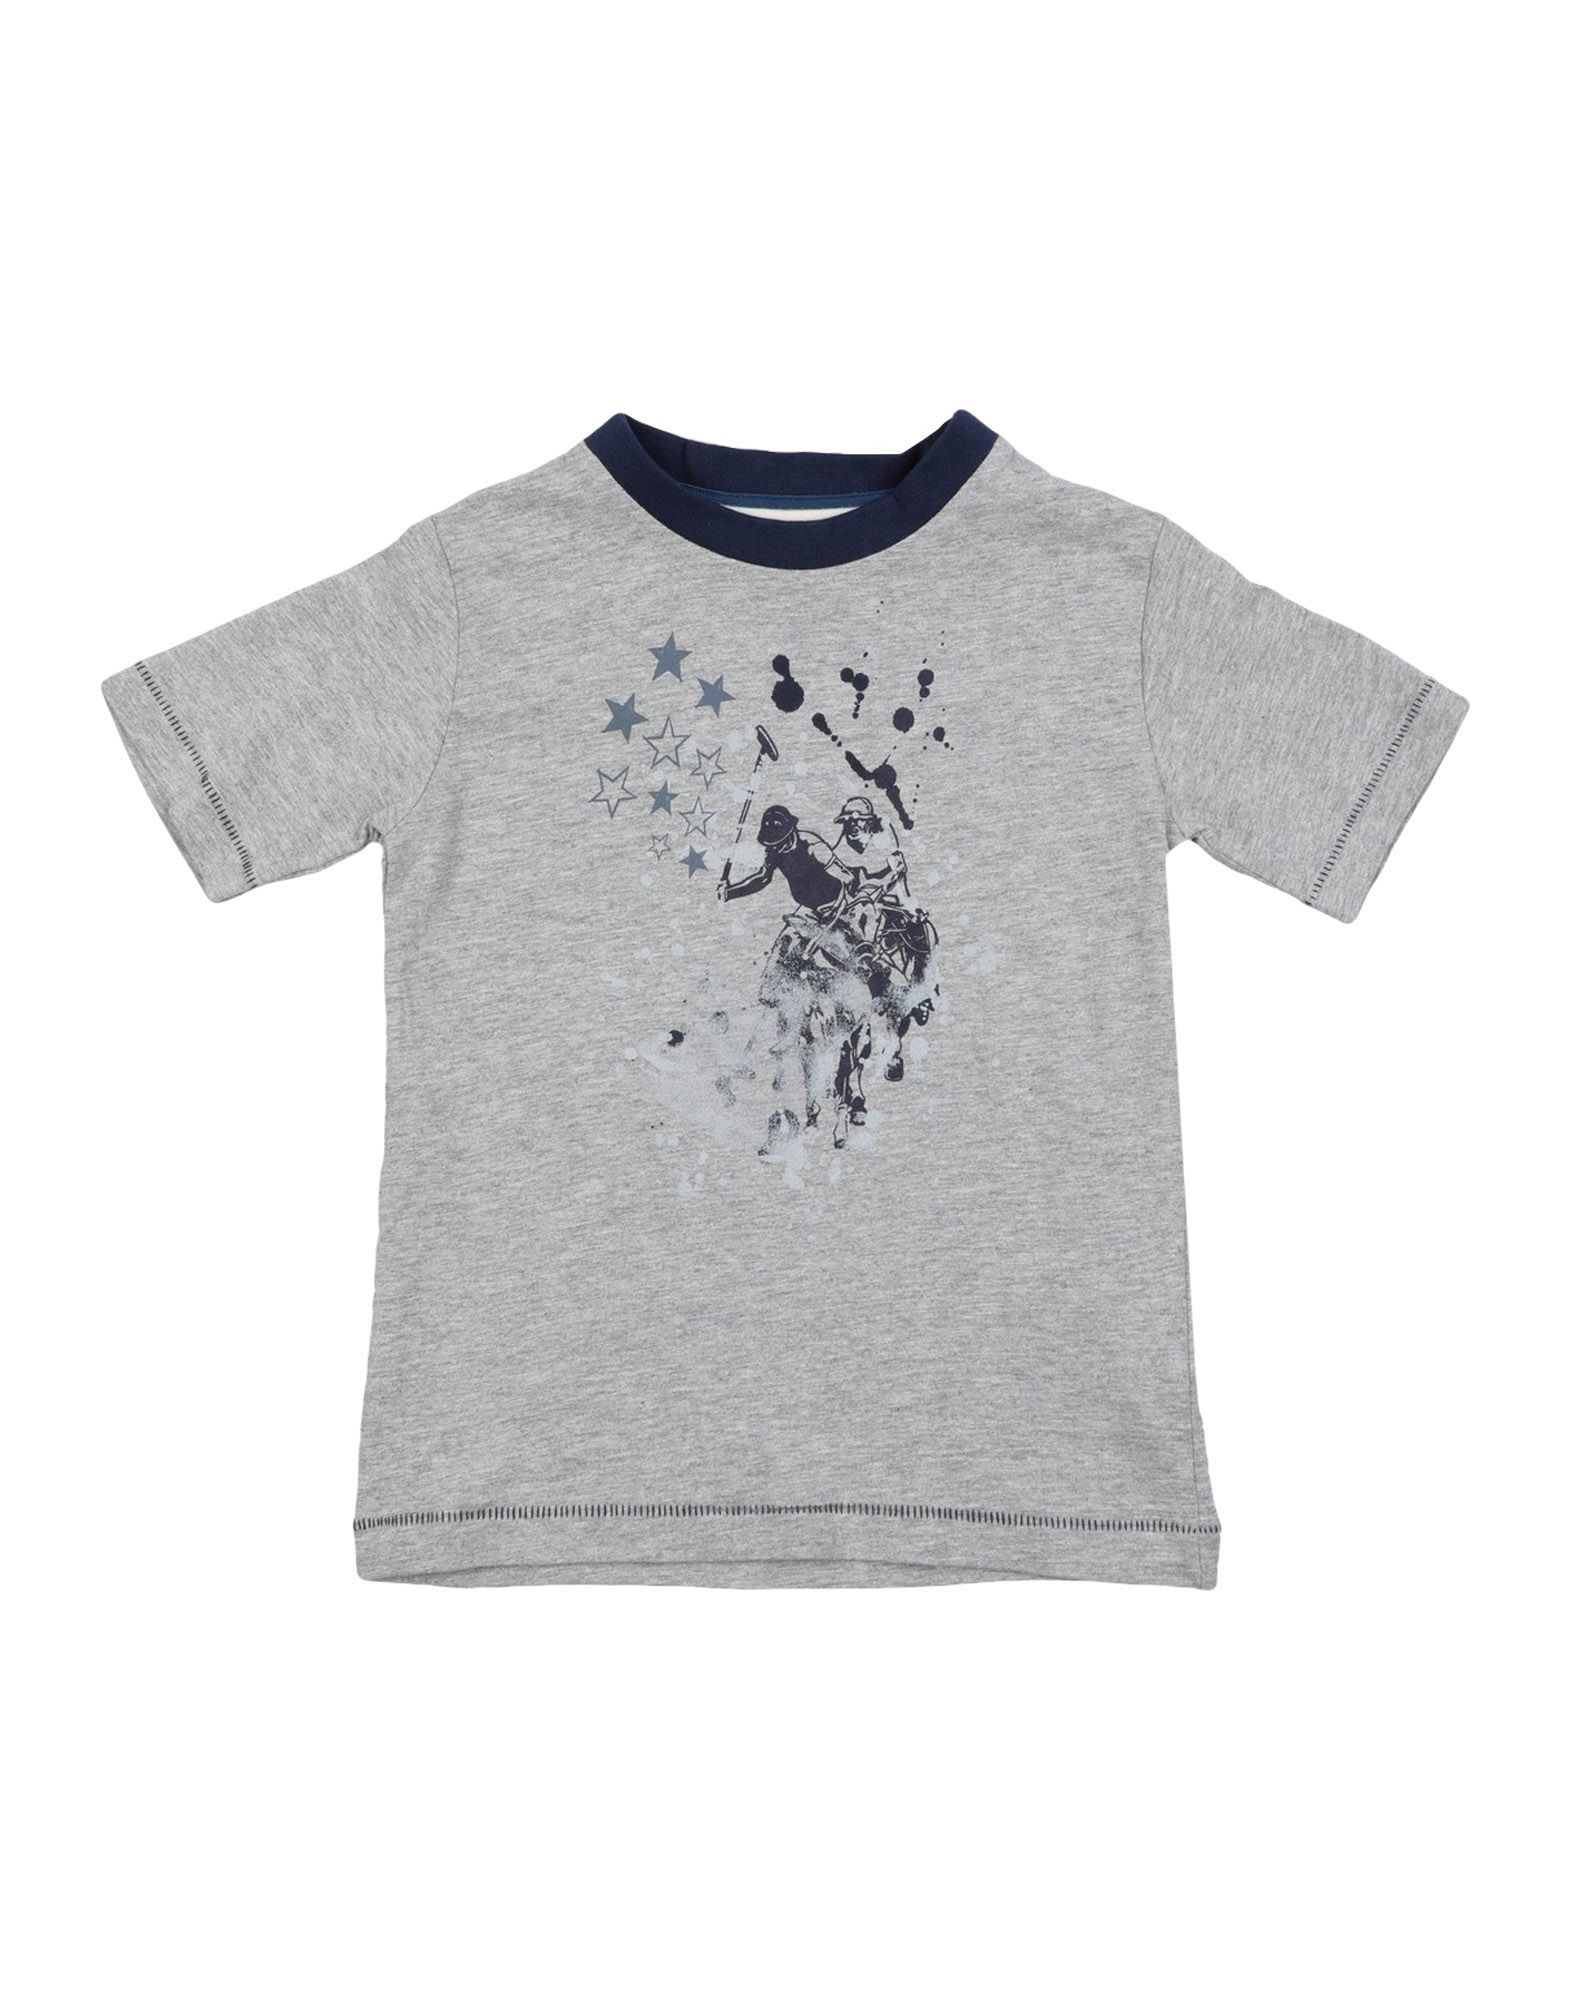 U S Polo Assn T Shirt Boy 0 24 Months Online On Yoox Belgium